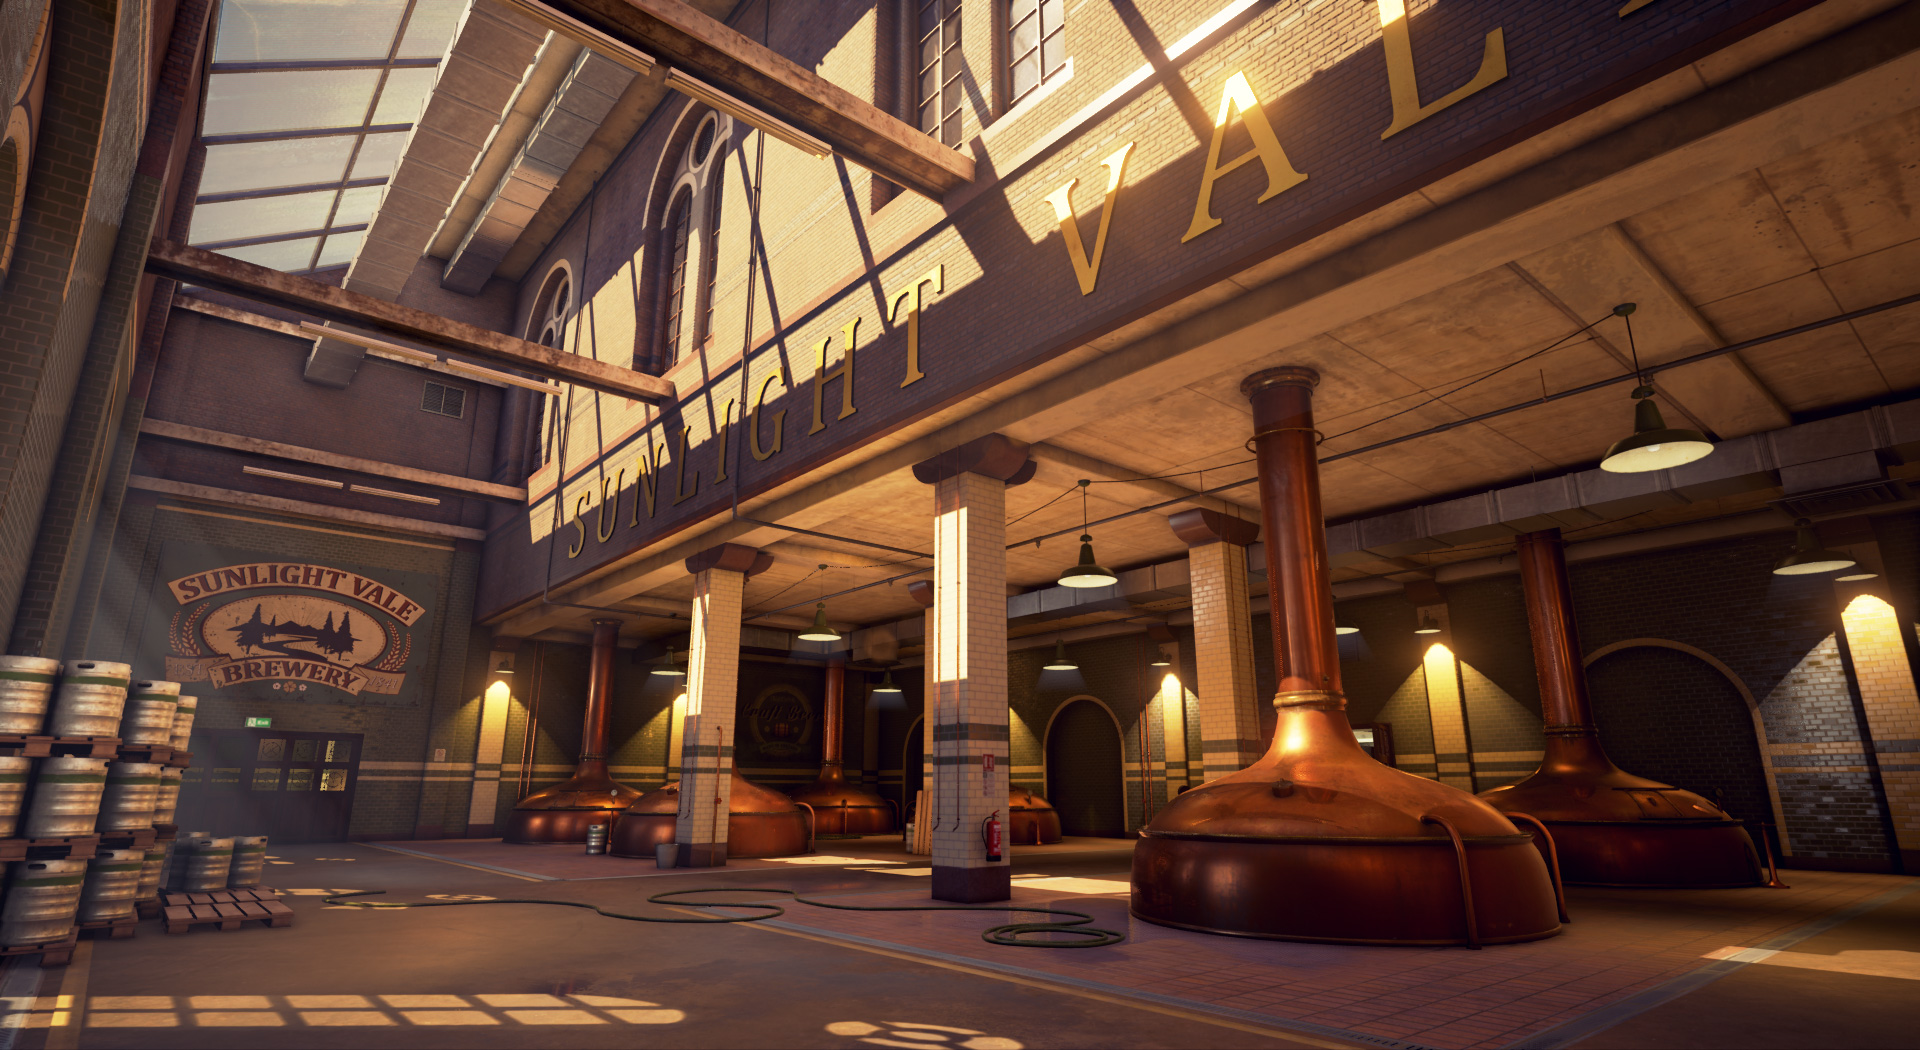 unreal 4 brewery screenshot 01